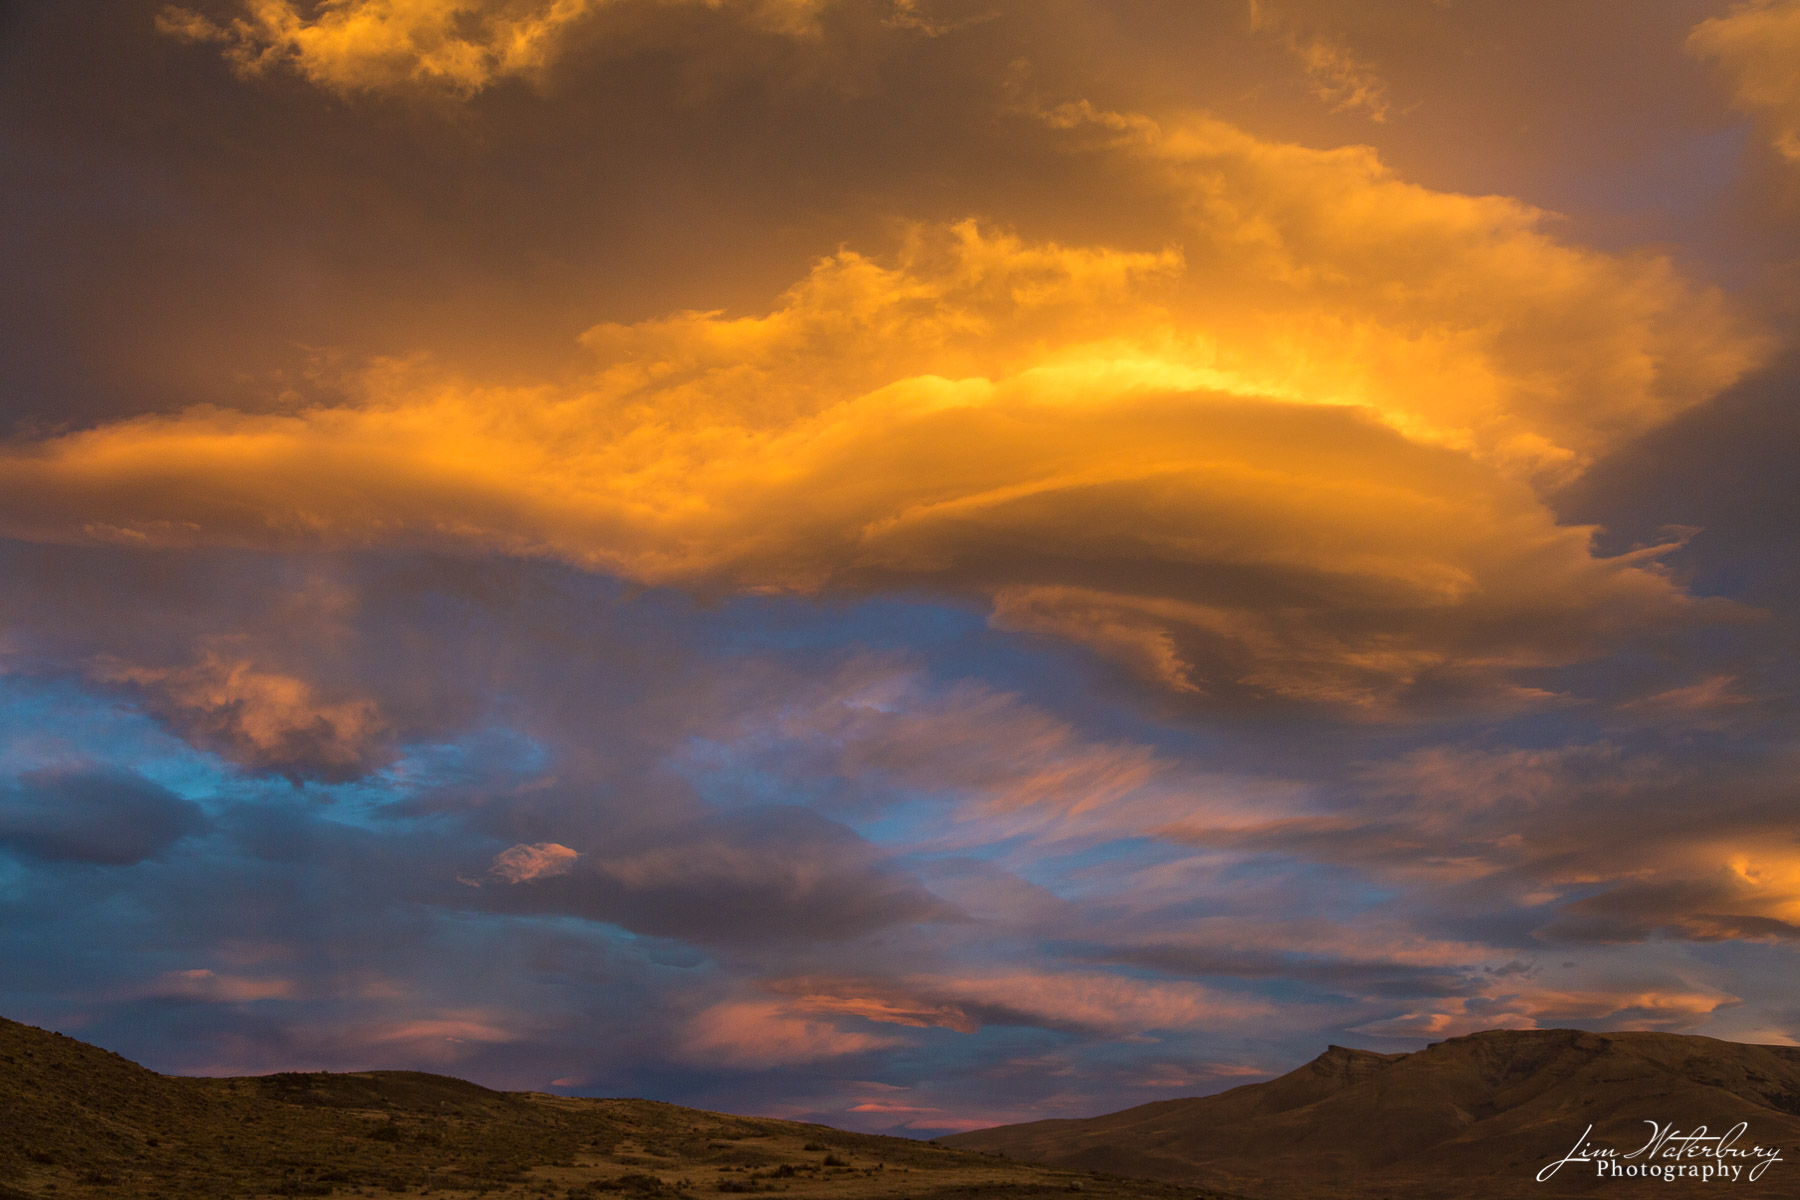 Layers of lenticular clouds at sunset, Torres del Paine National Park, Patagonia.